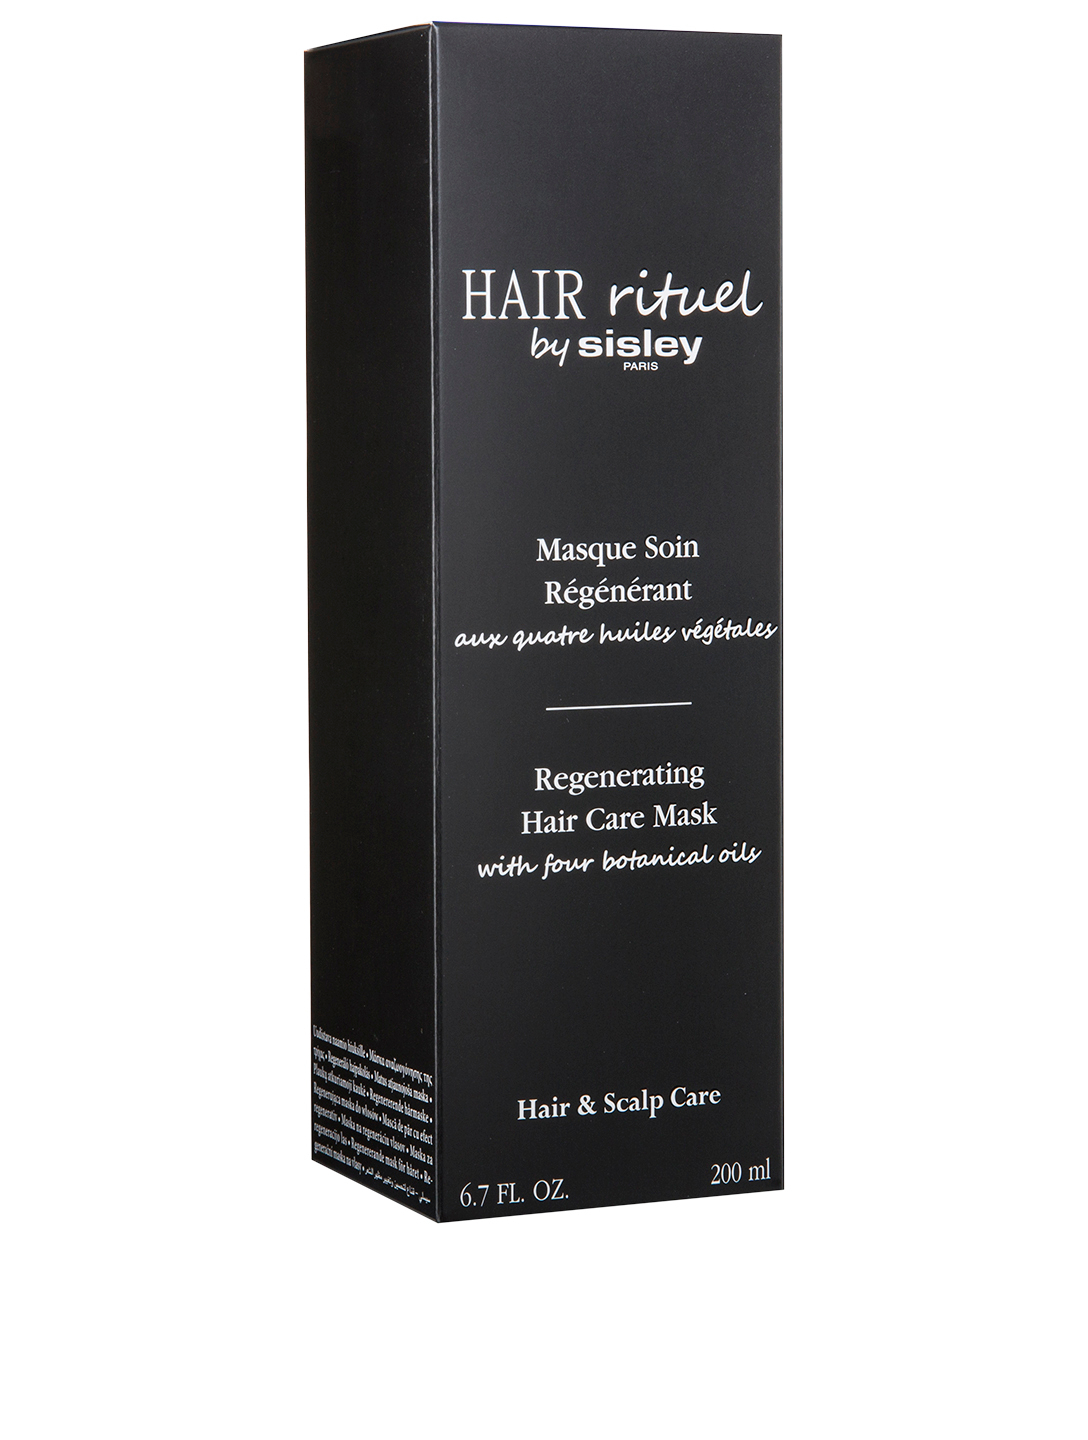 SISLEY-PARIS Regenerating Hair Care Mask with botanical Oils Beauty